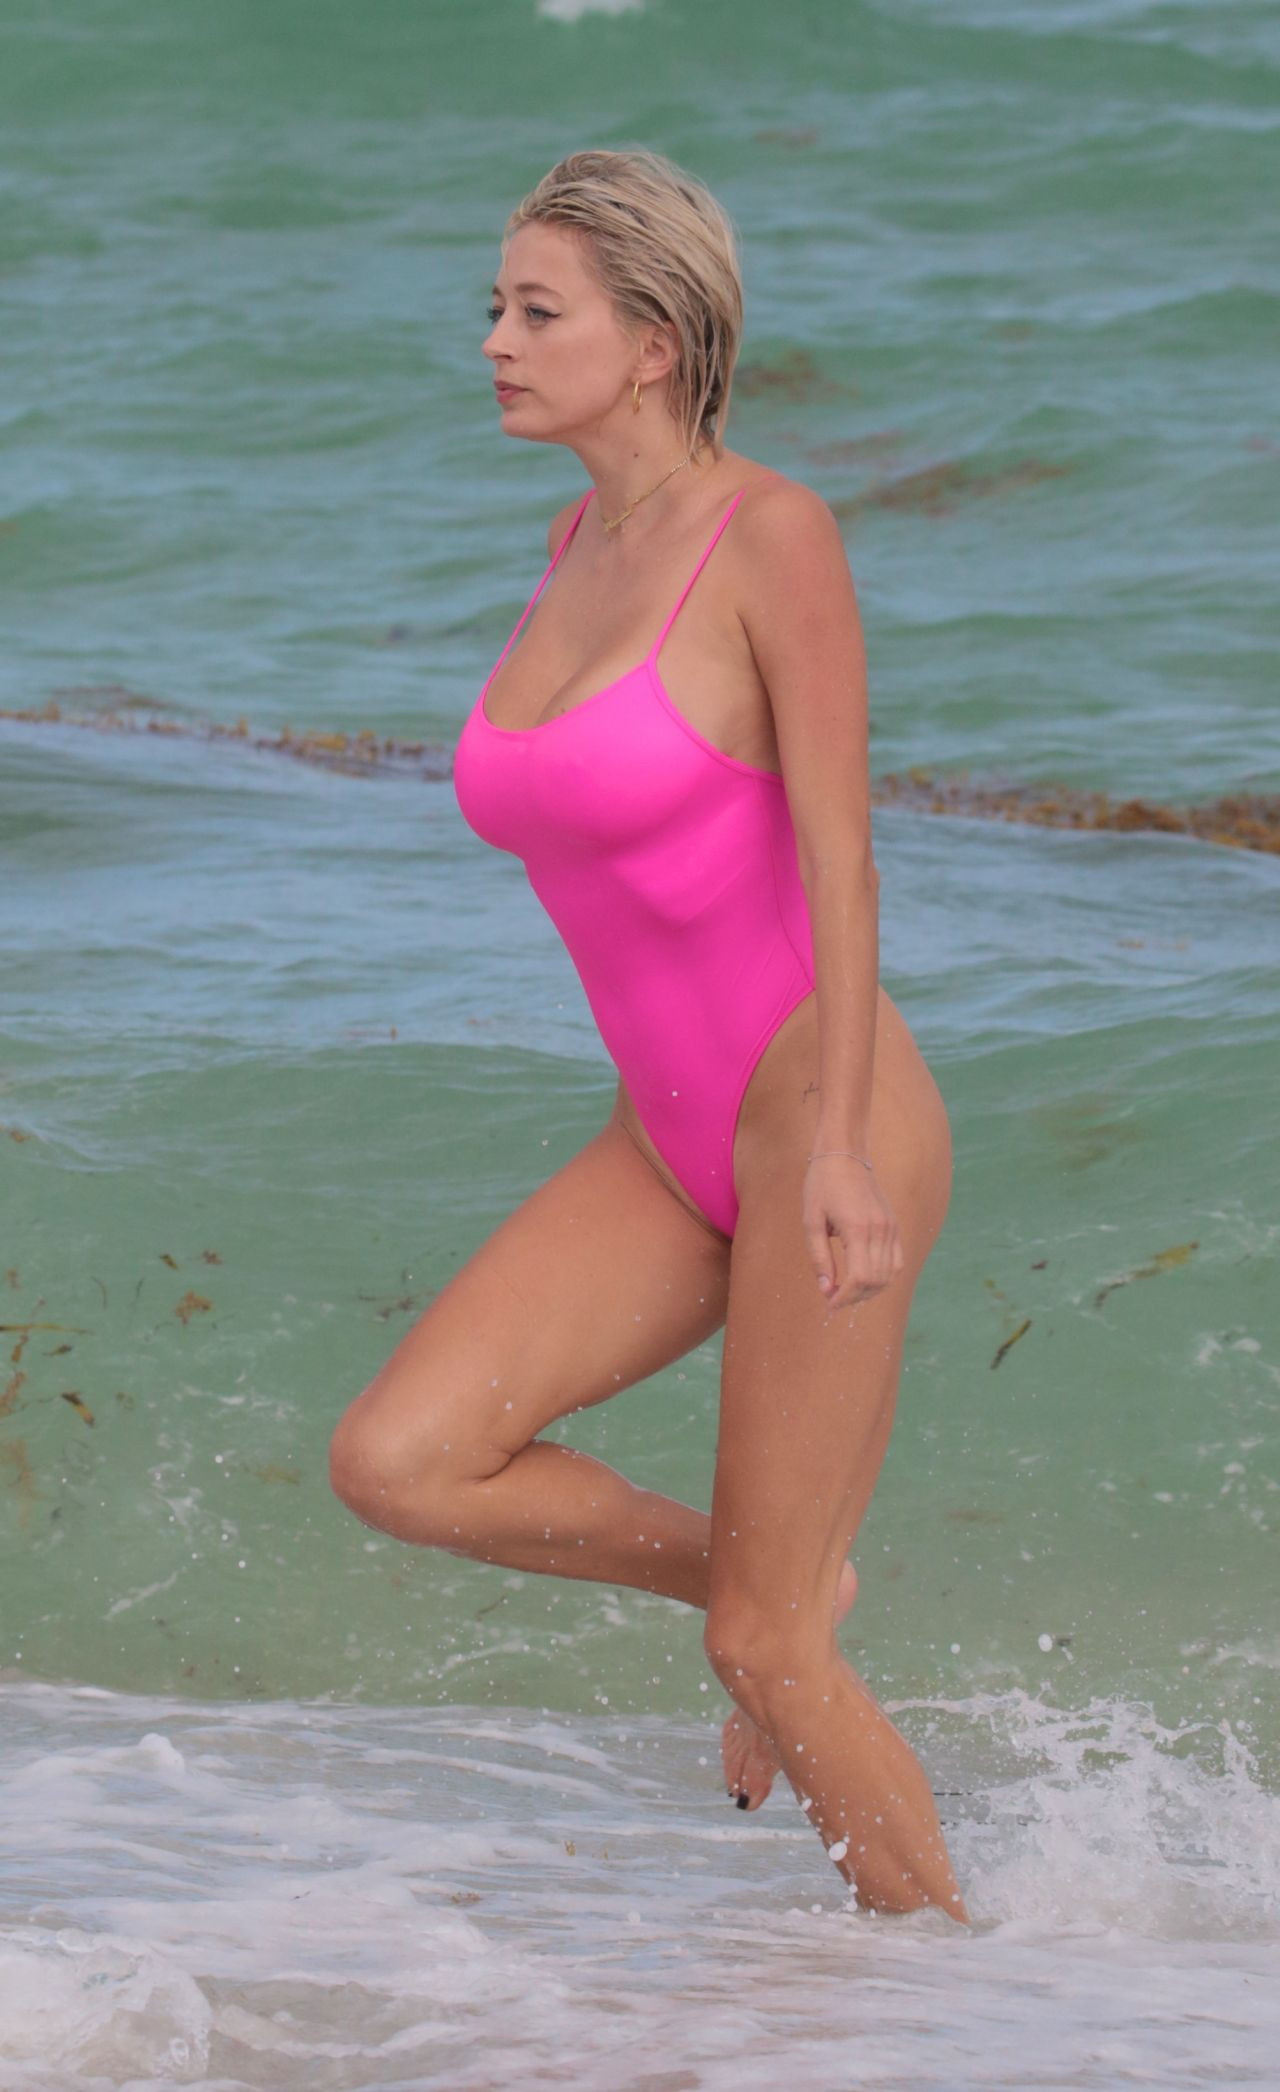 A Pink Vreeland The Beach In Caroline Swimsuit Miami 10 At fg6vY7byI